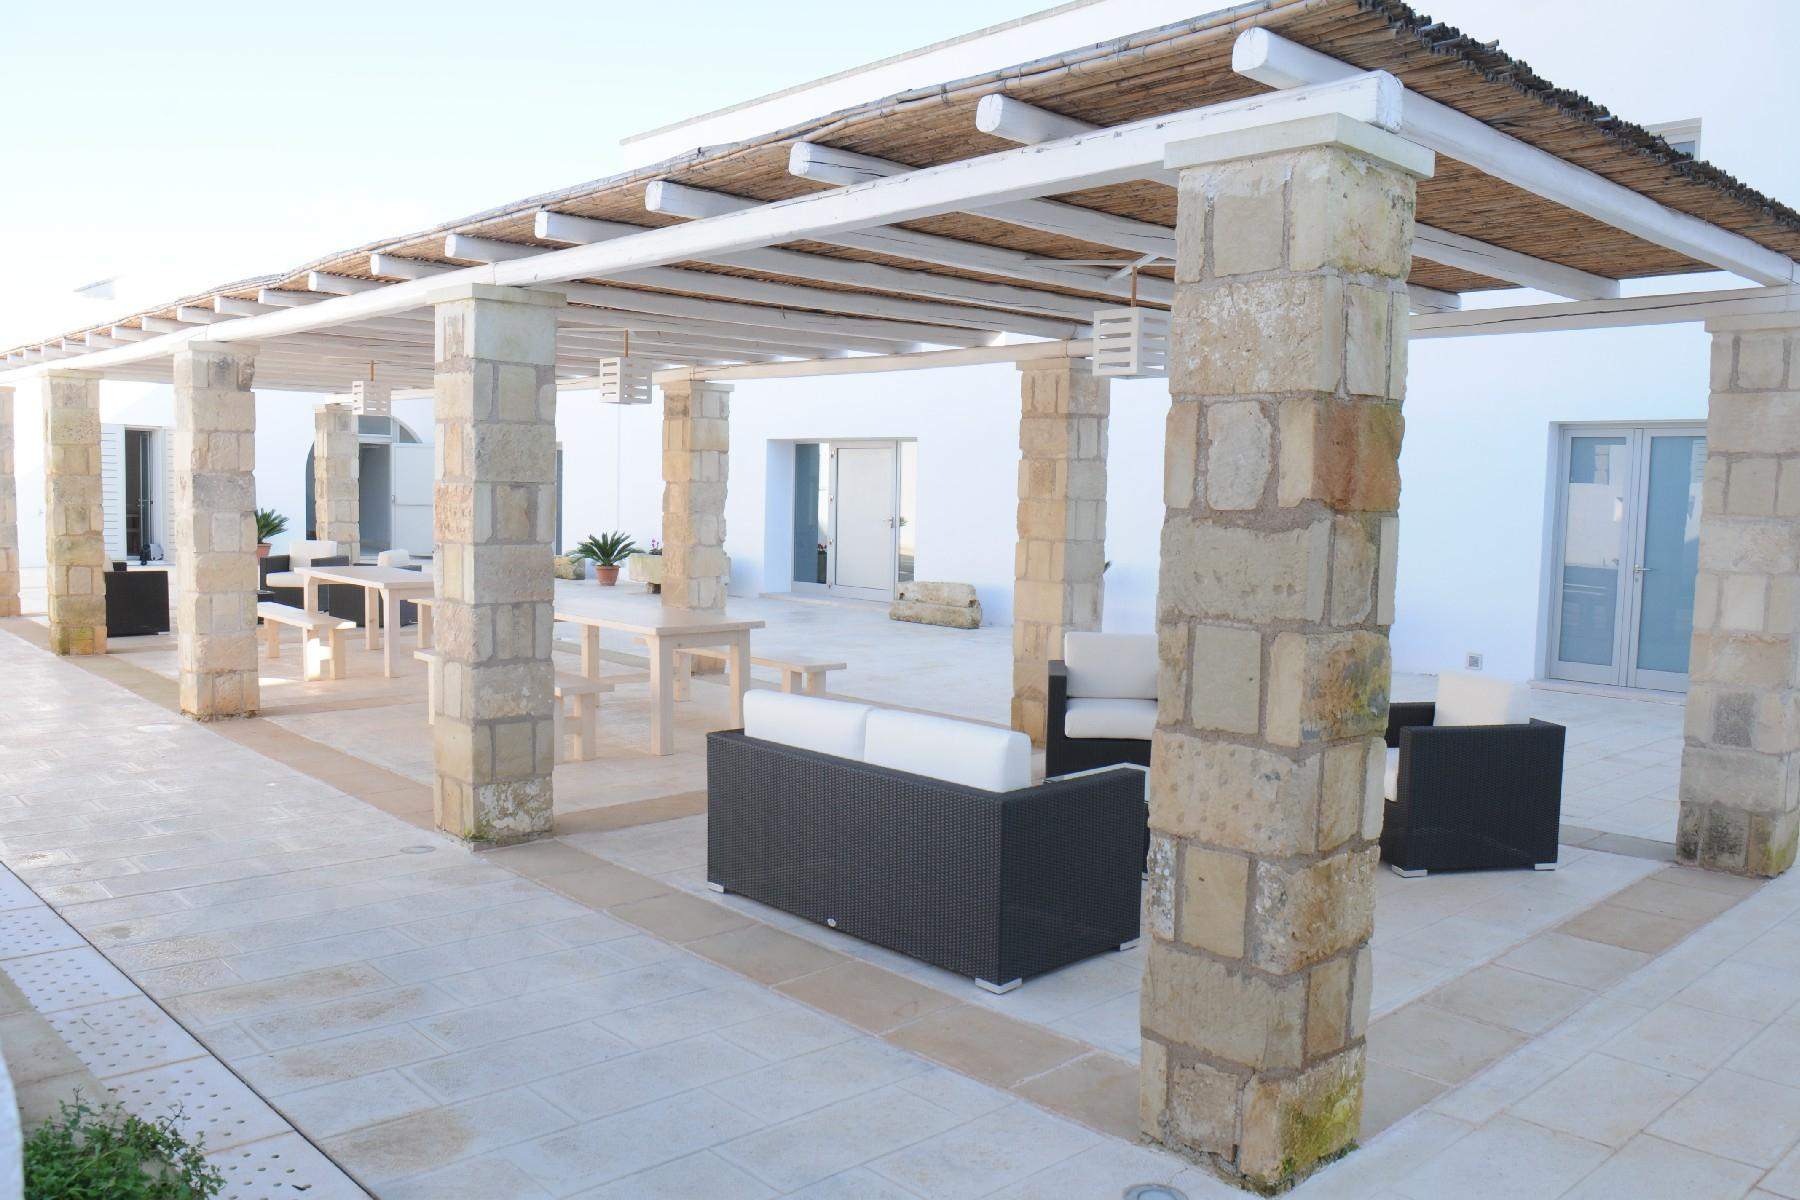 Perfectly renovated farmhouse a few kilometers from Otranto - 21